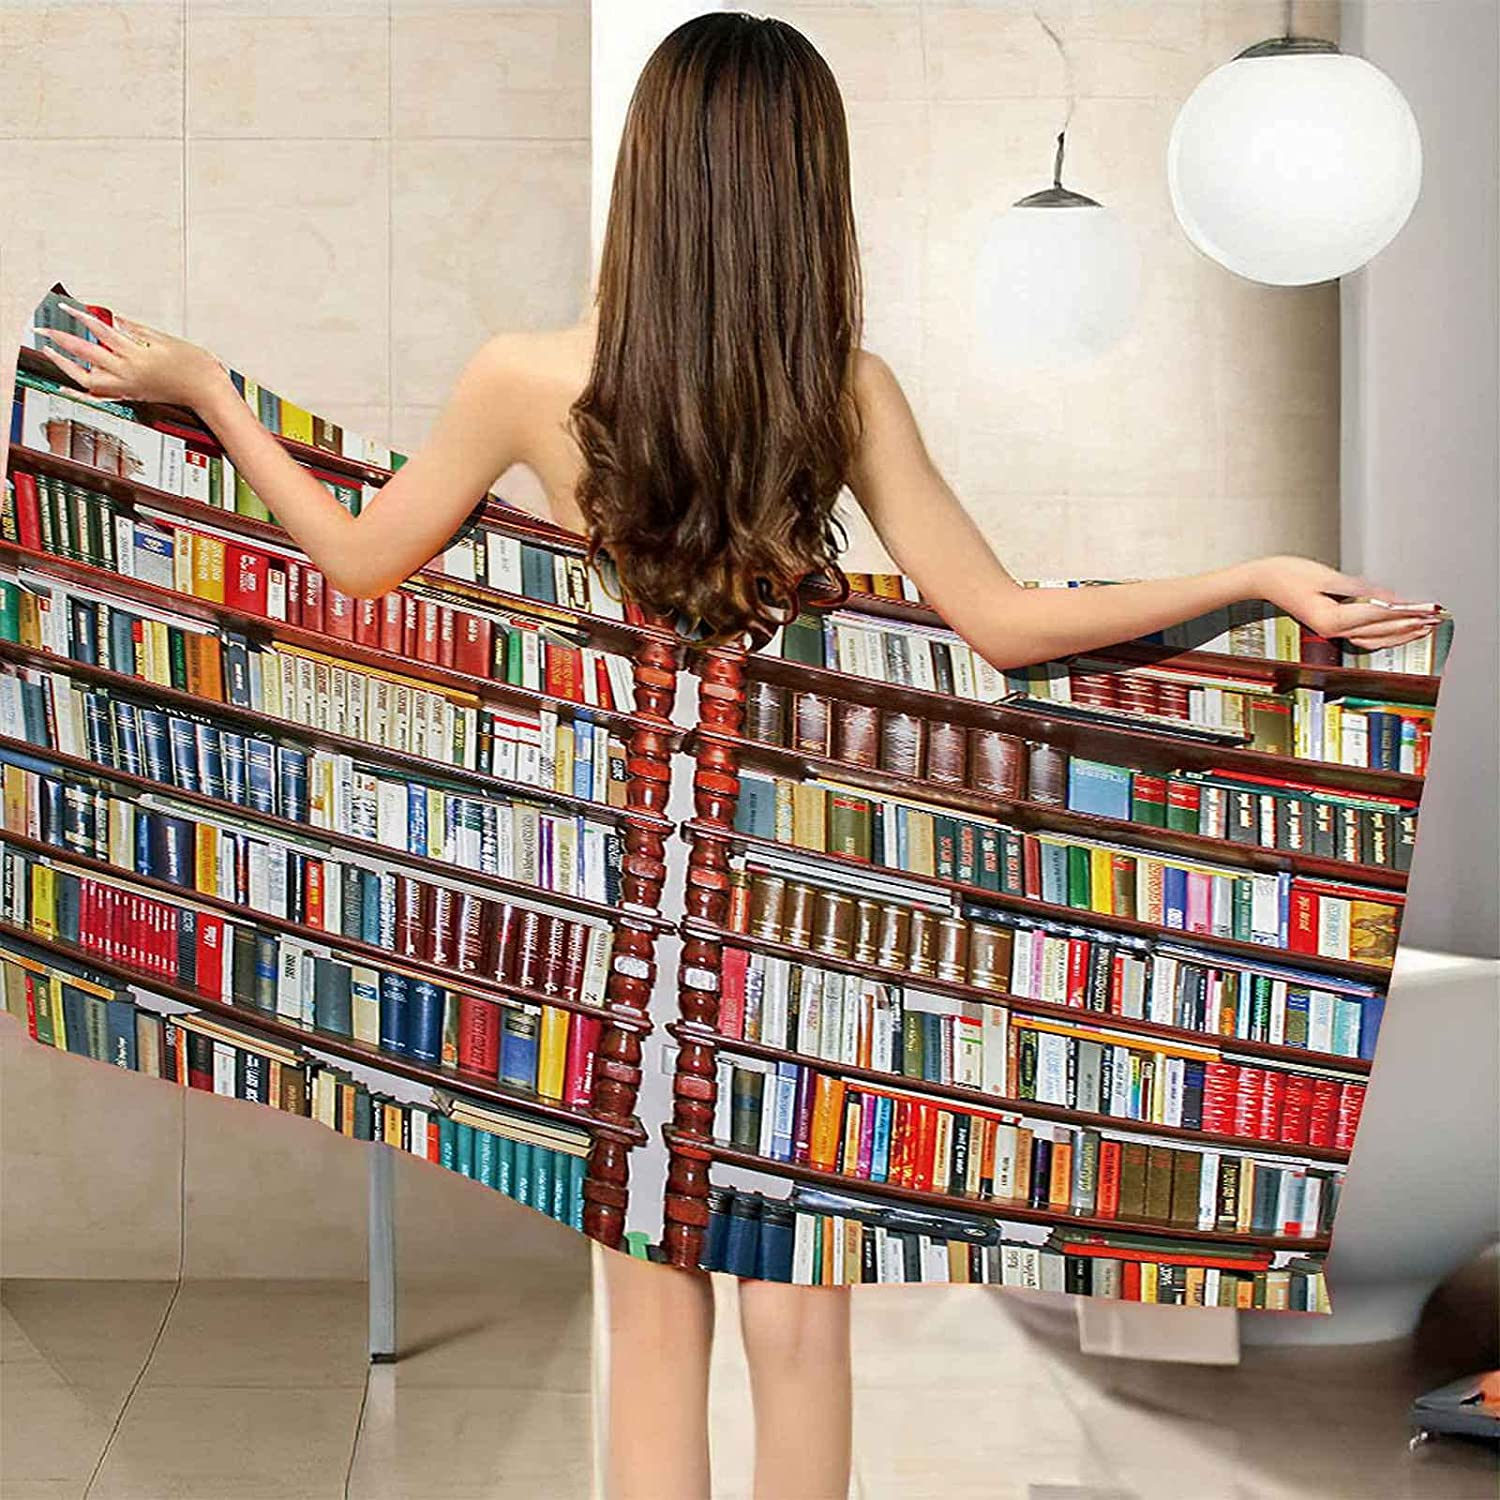 Industry No. 1 San Francisco Mall QFMMQI Large Personalized Beach Towel Quick Soft Super Bath Dry